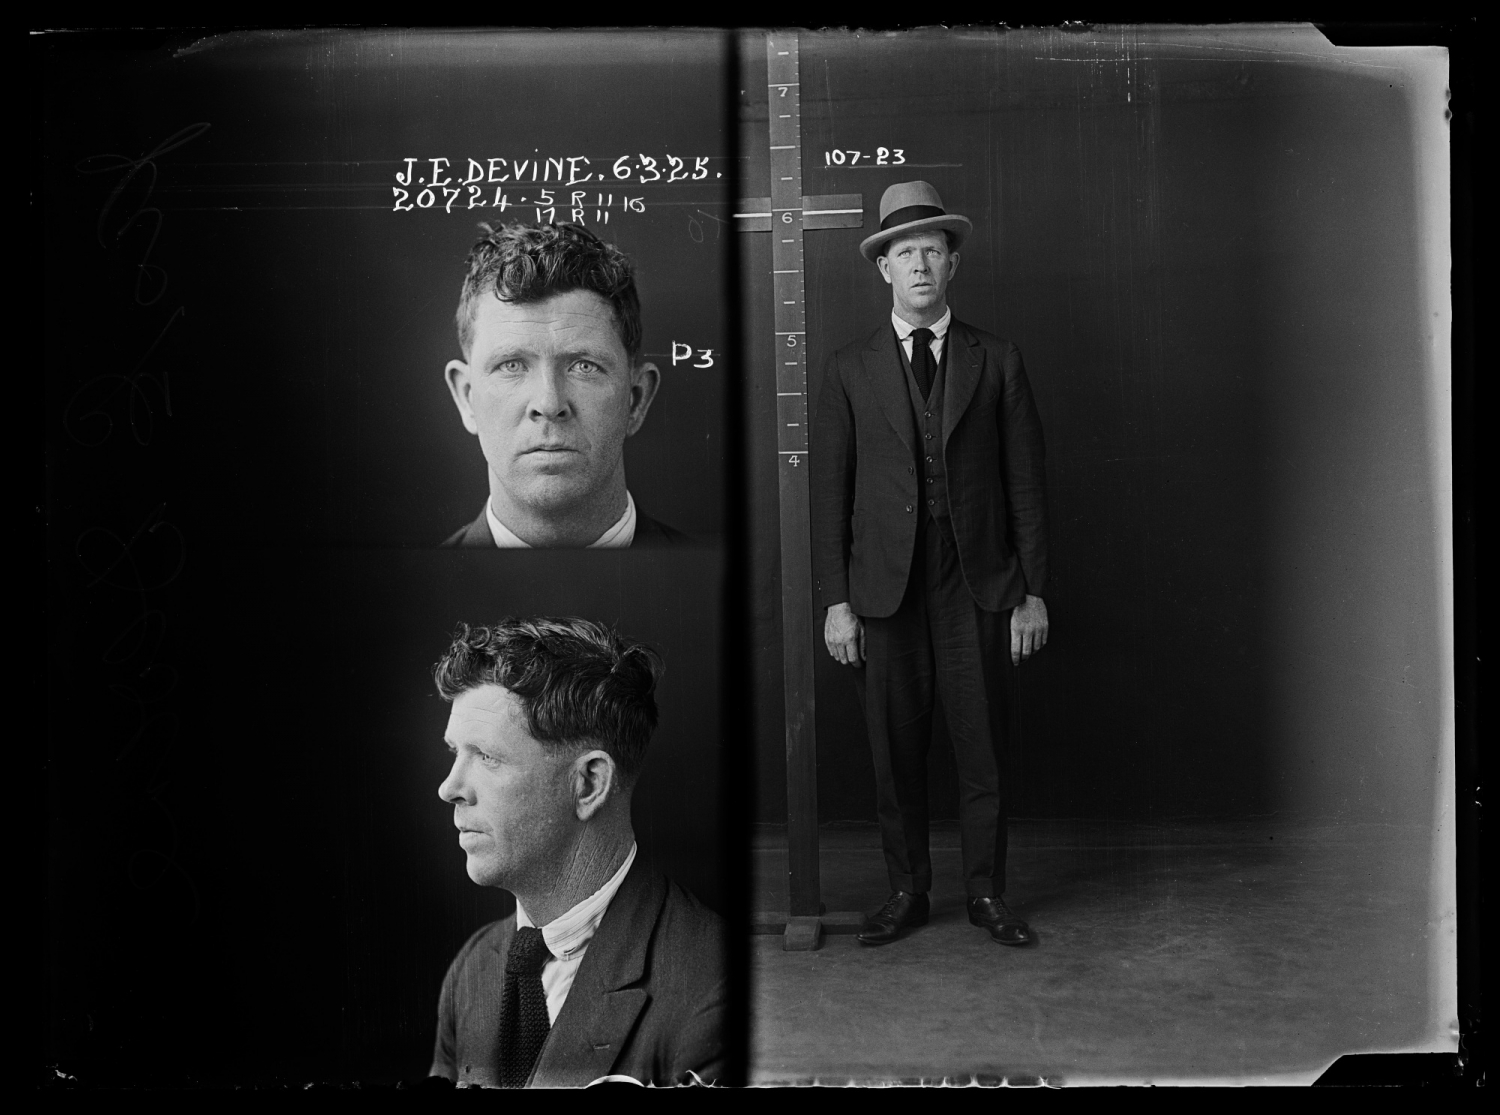 James Edward Devine, criminal record number 20724, 6th March 1925, State Penitentiary, Long Bay.